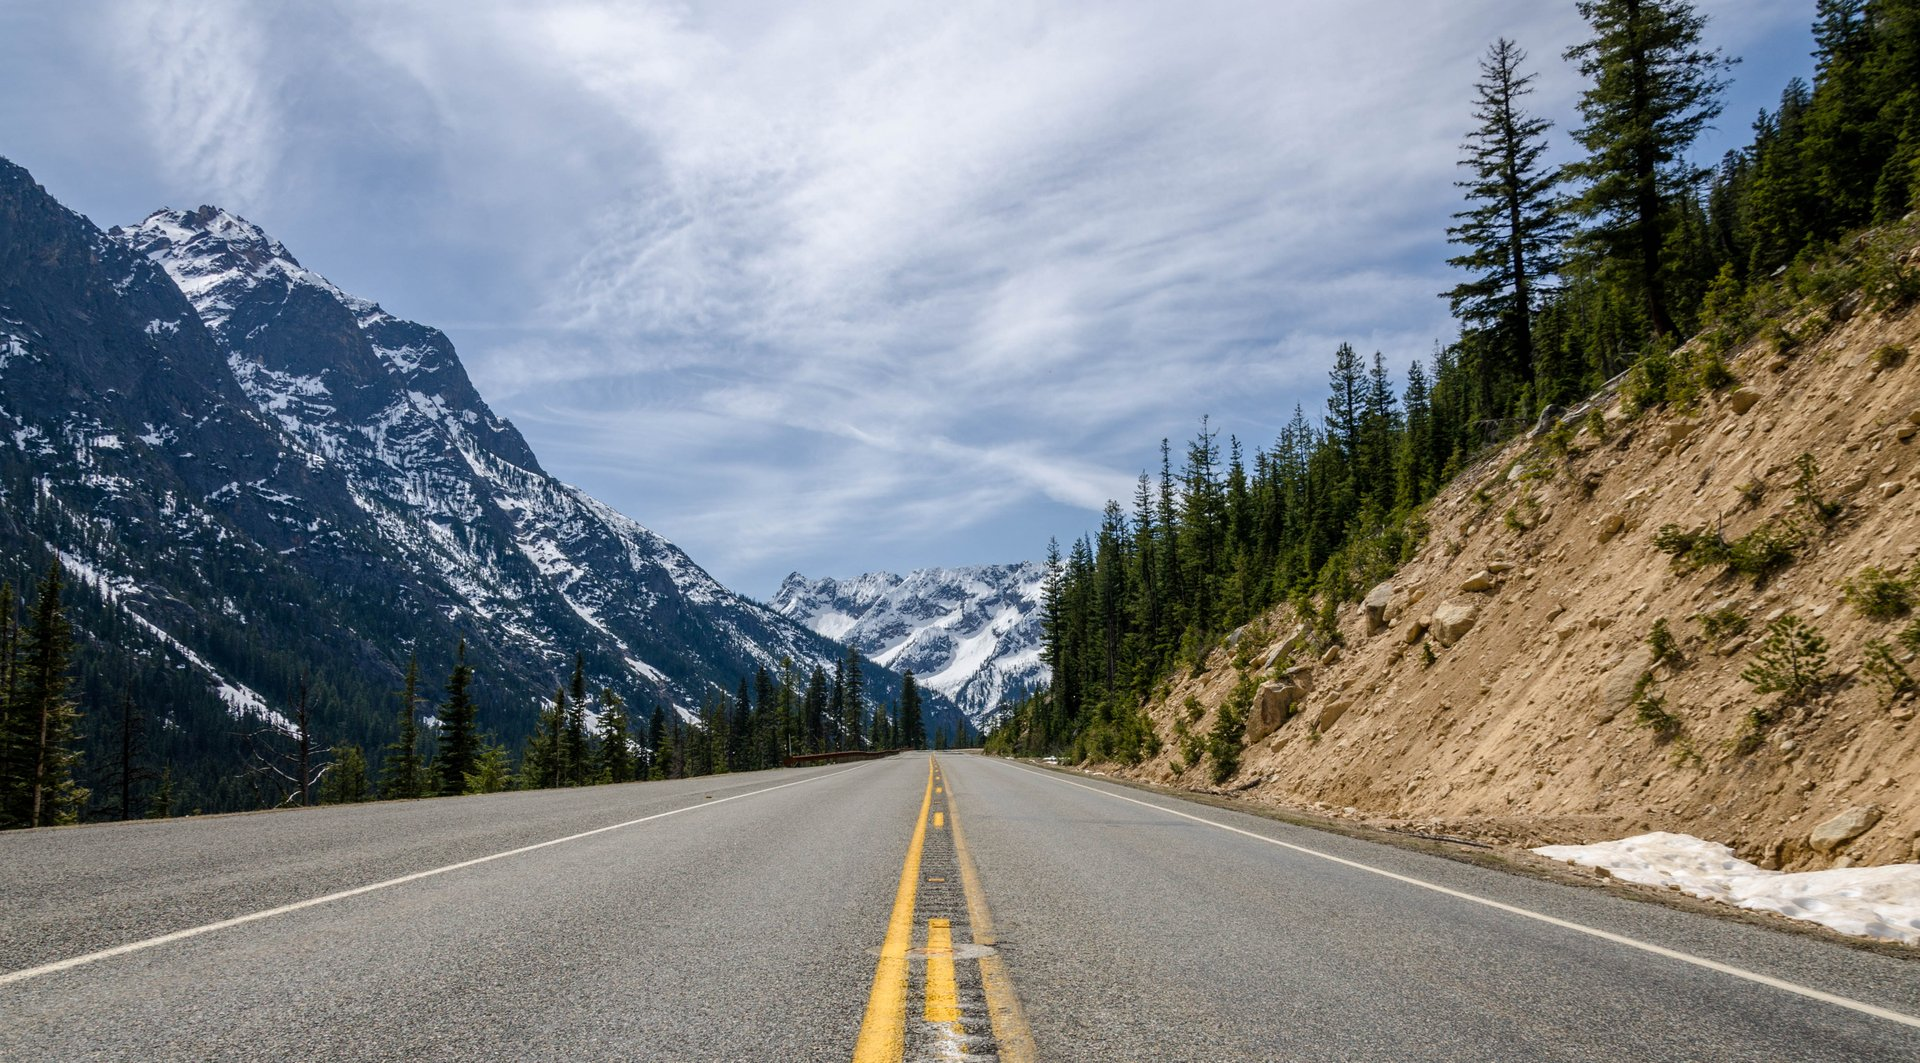 North Cascades Highway in Washington 2020 - Best Time